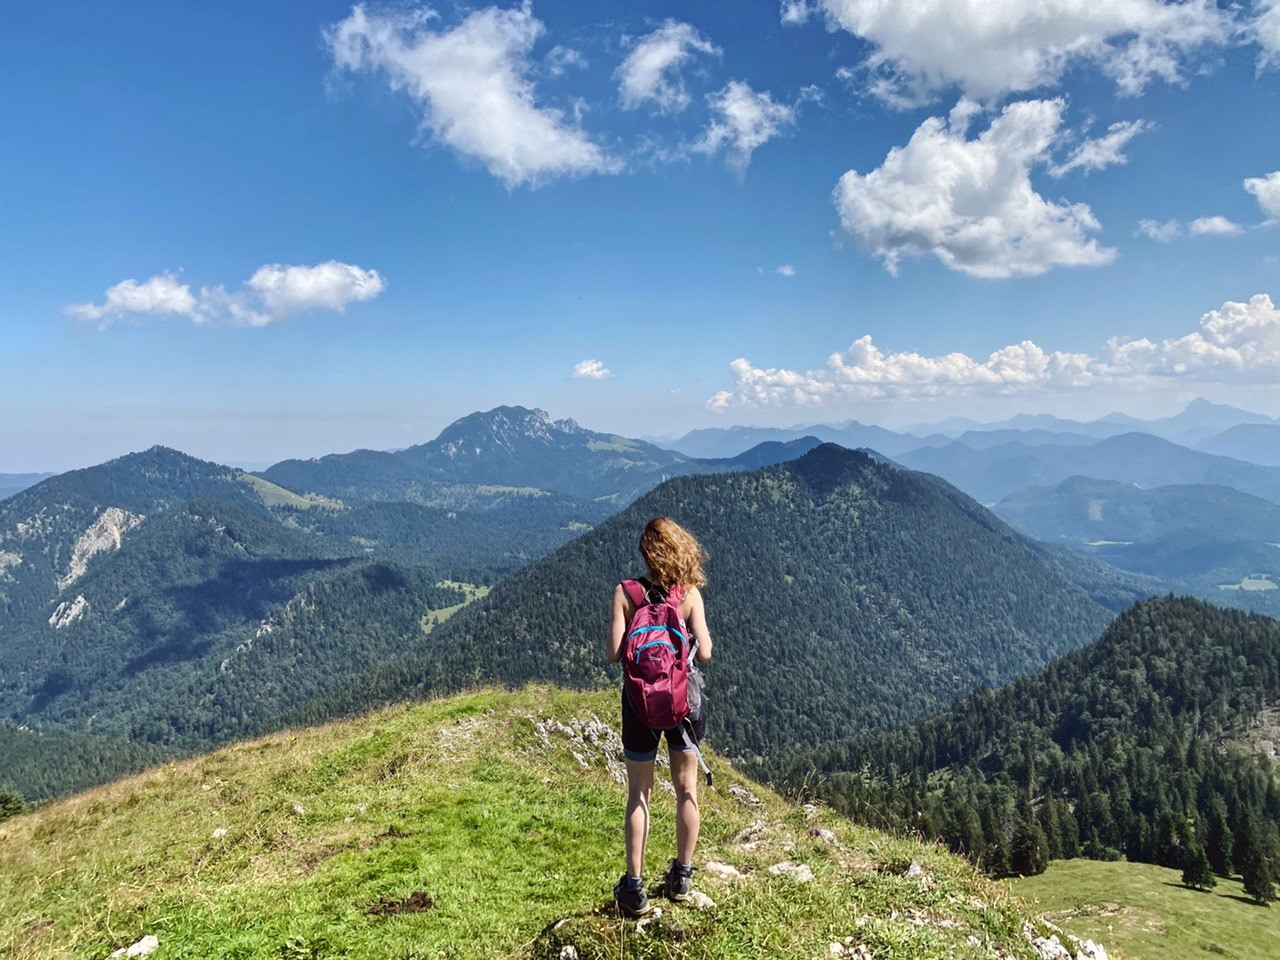 Veronika loves hiking, especially in the Alps